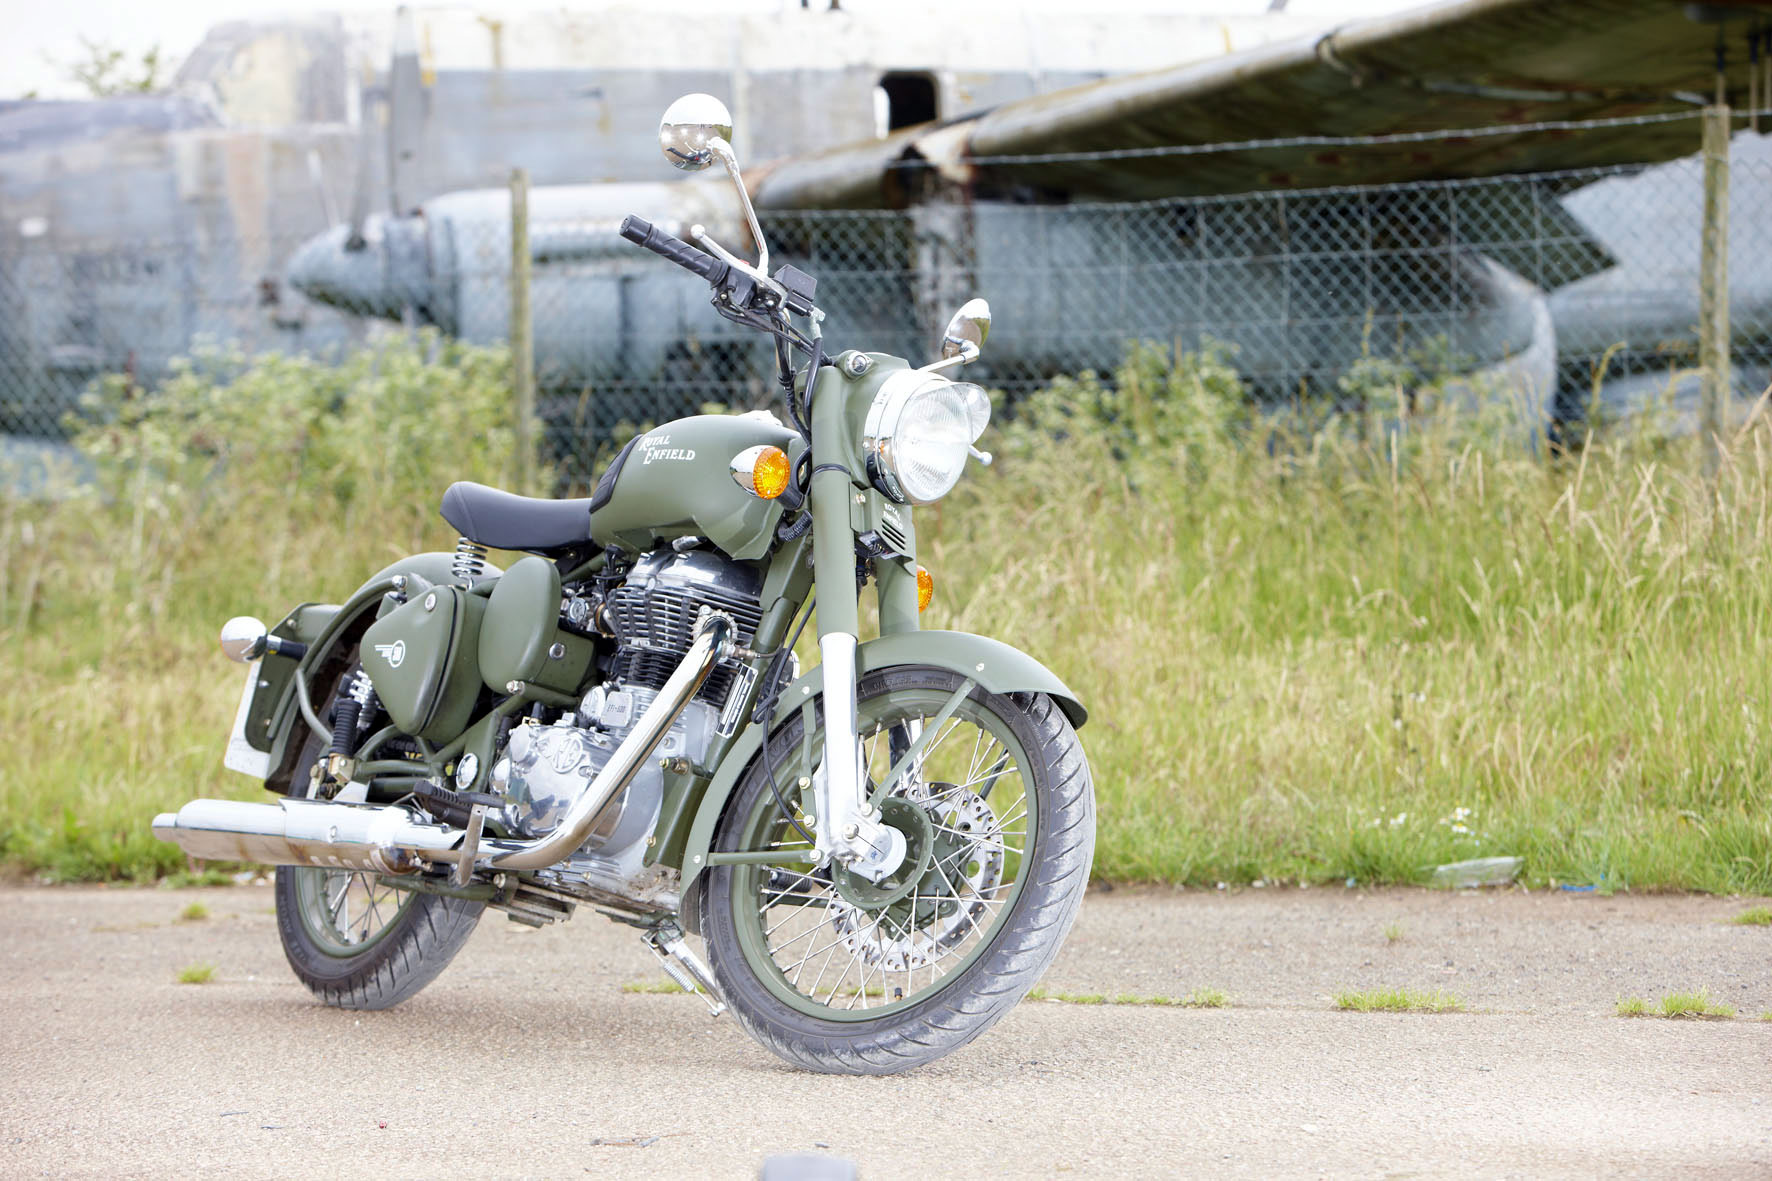 Royal Enfield Bullet 500 Army 2003 images #123833